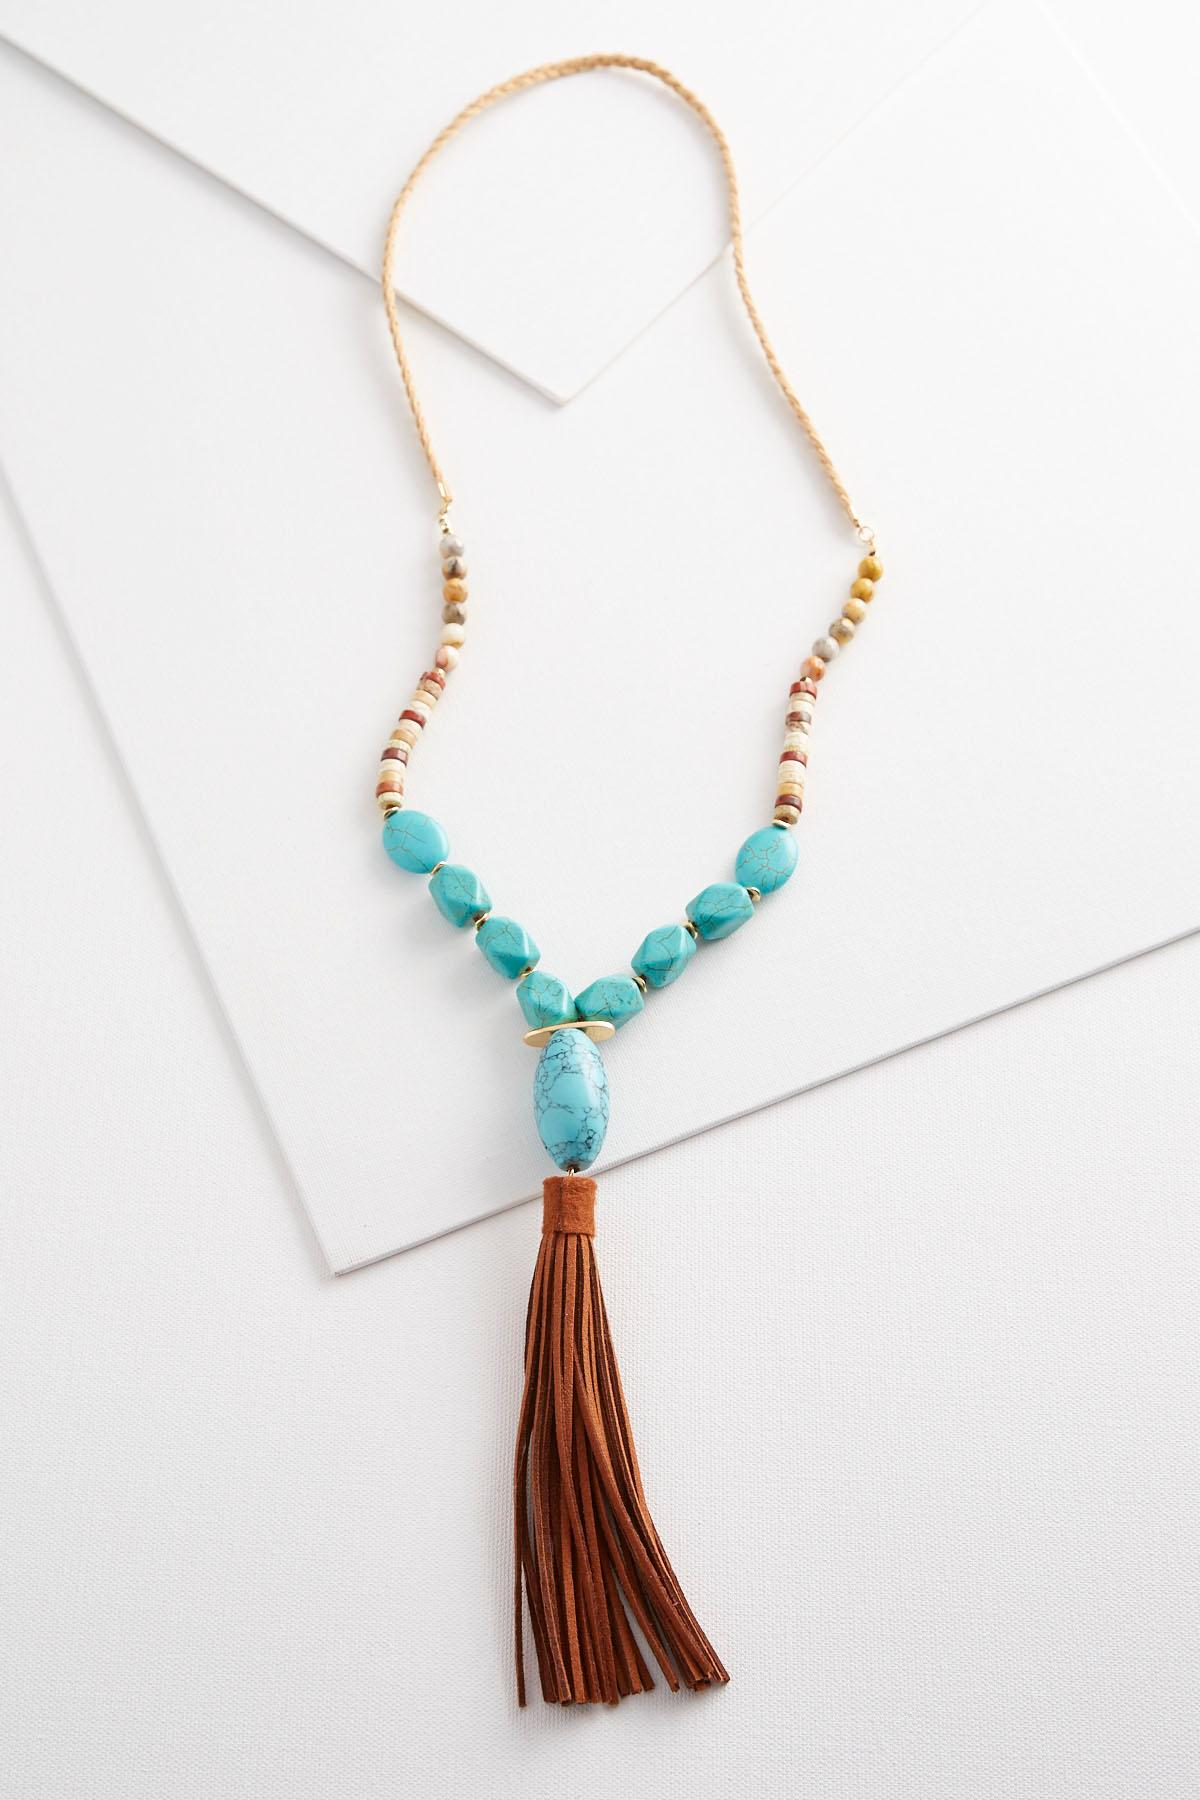 trio necklace tassel ball versona item l default